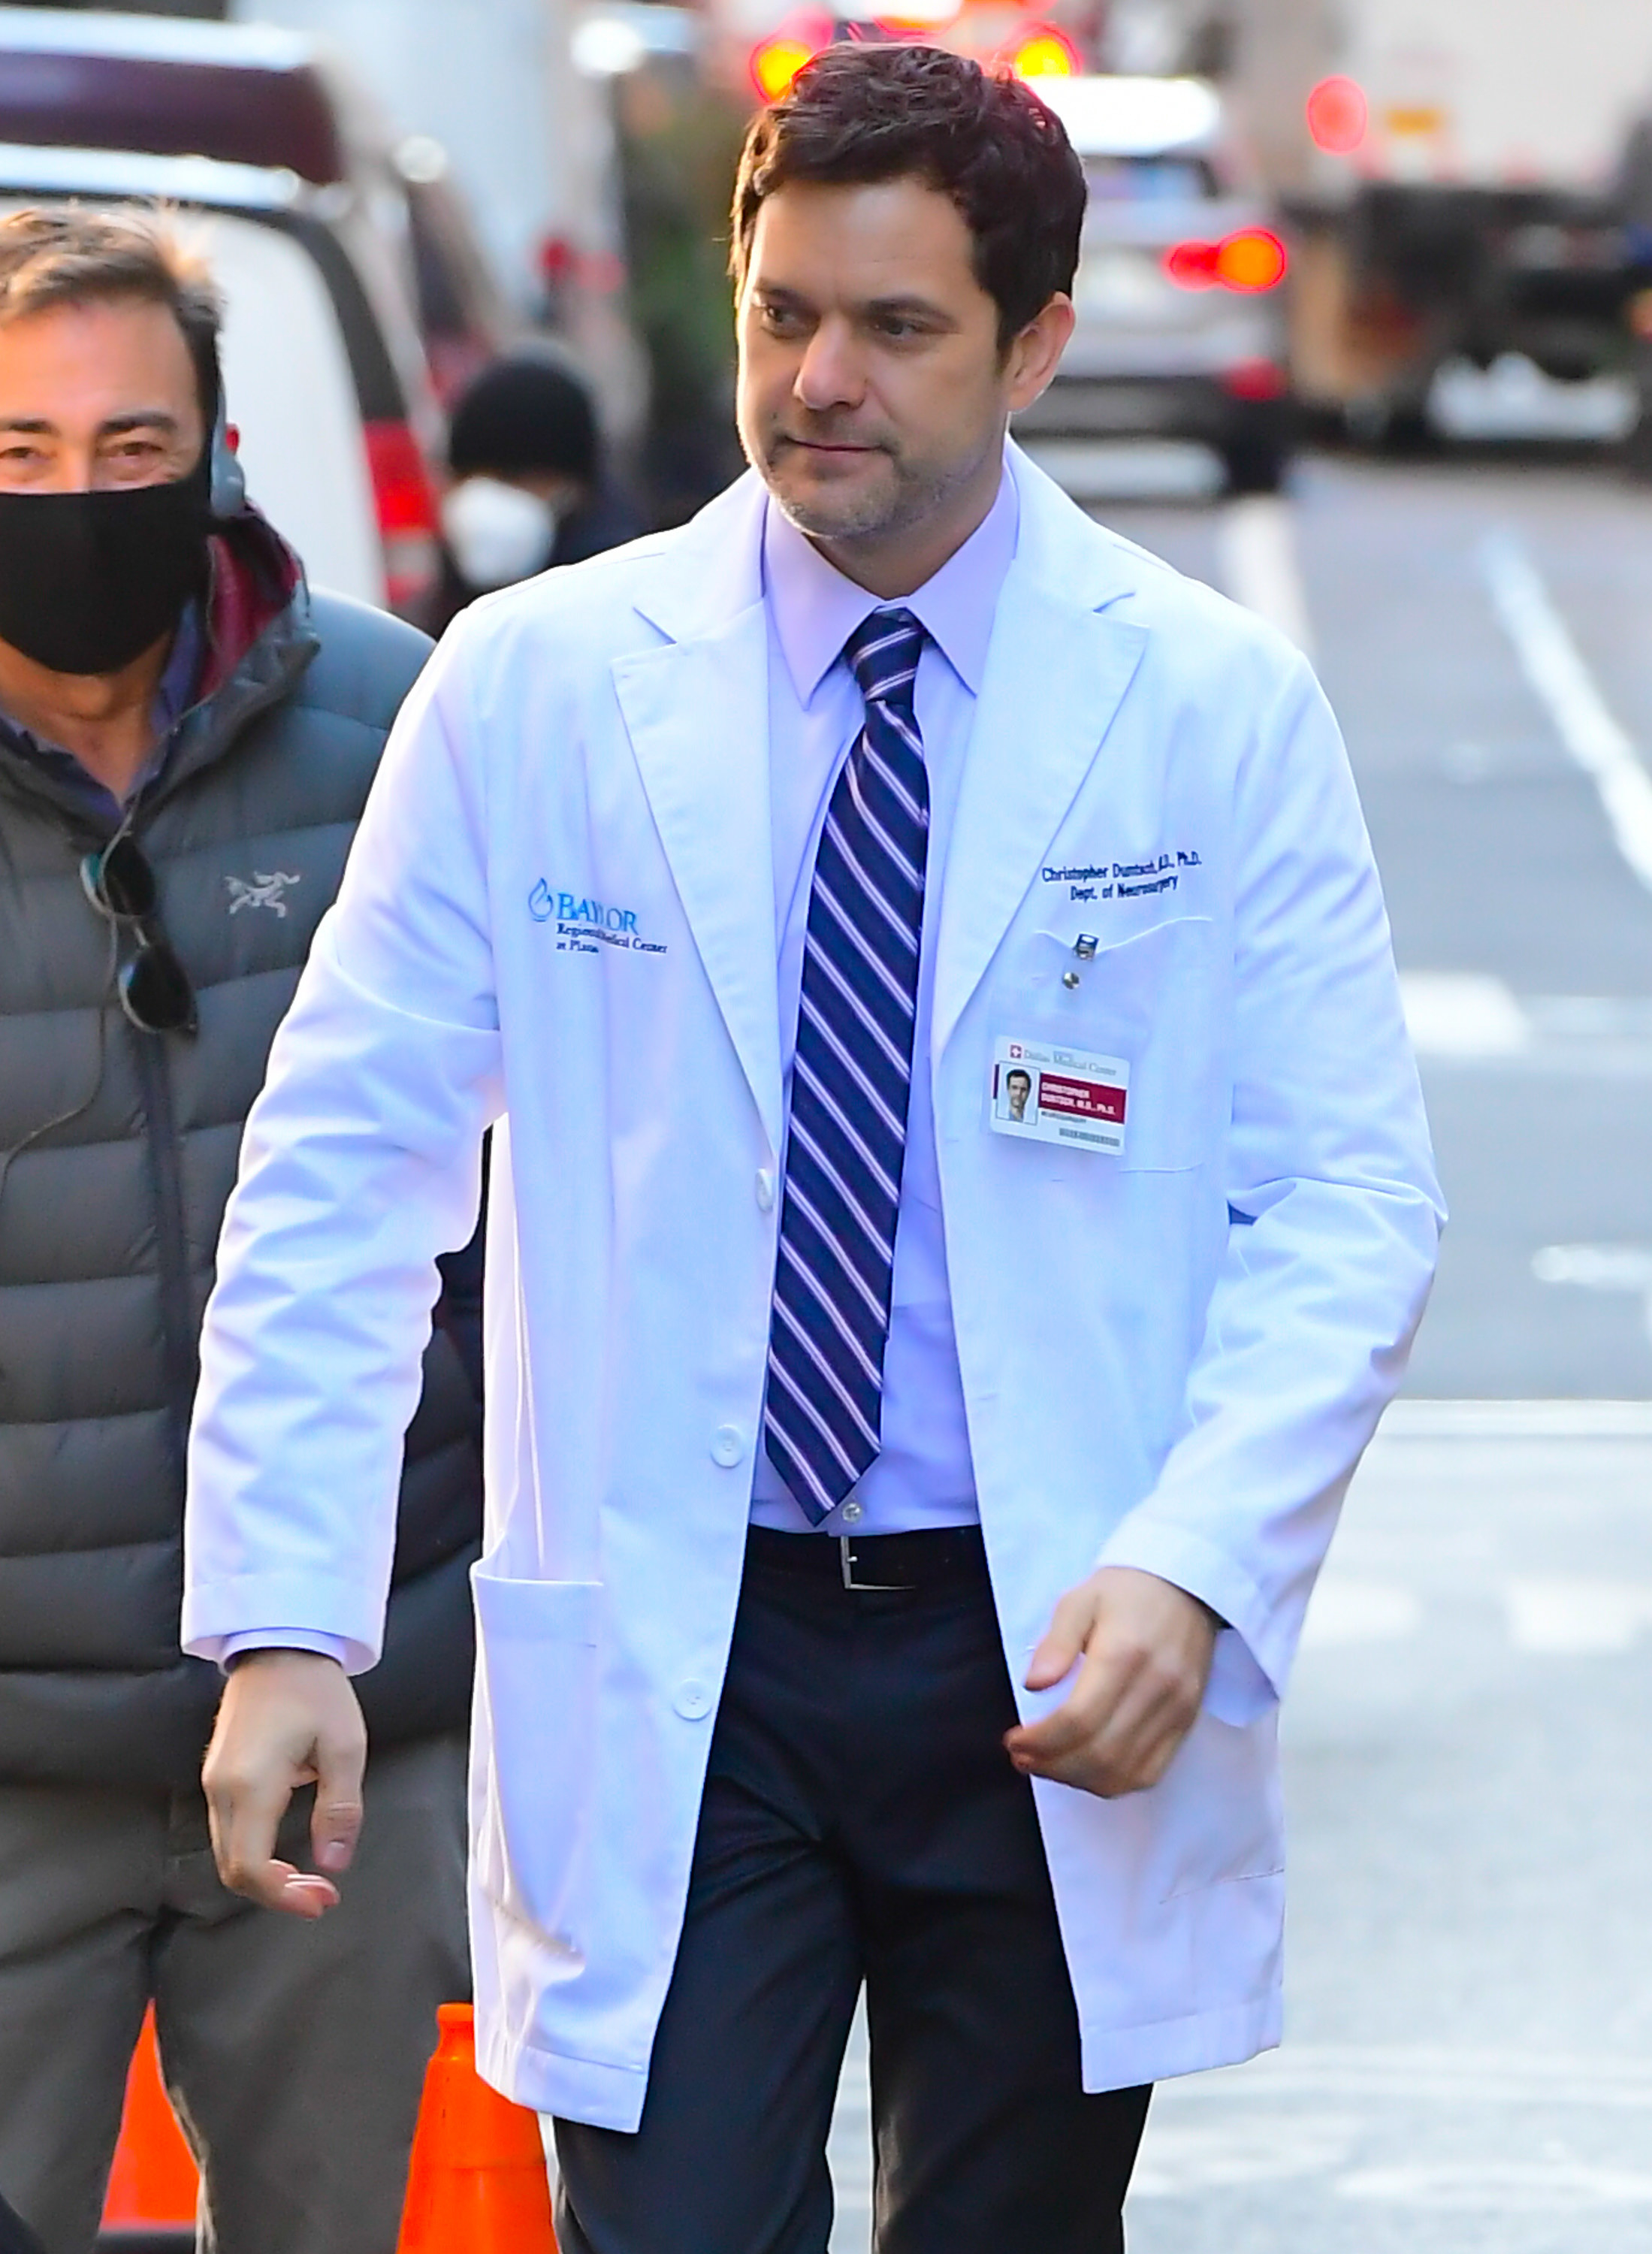 on set dressed as a doctor